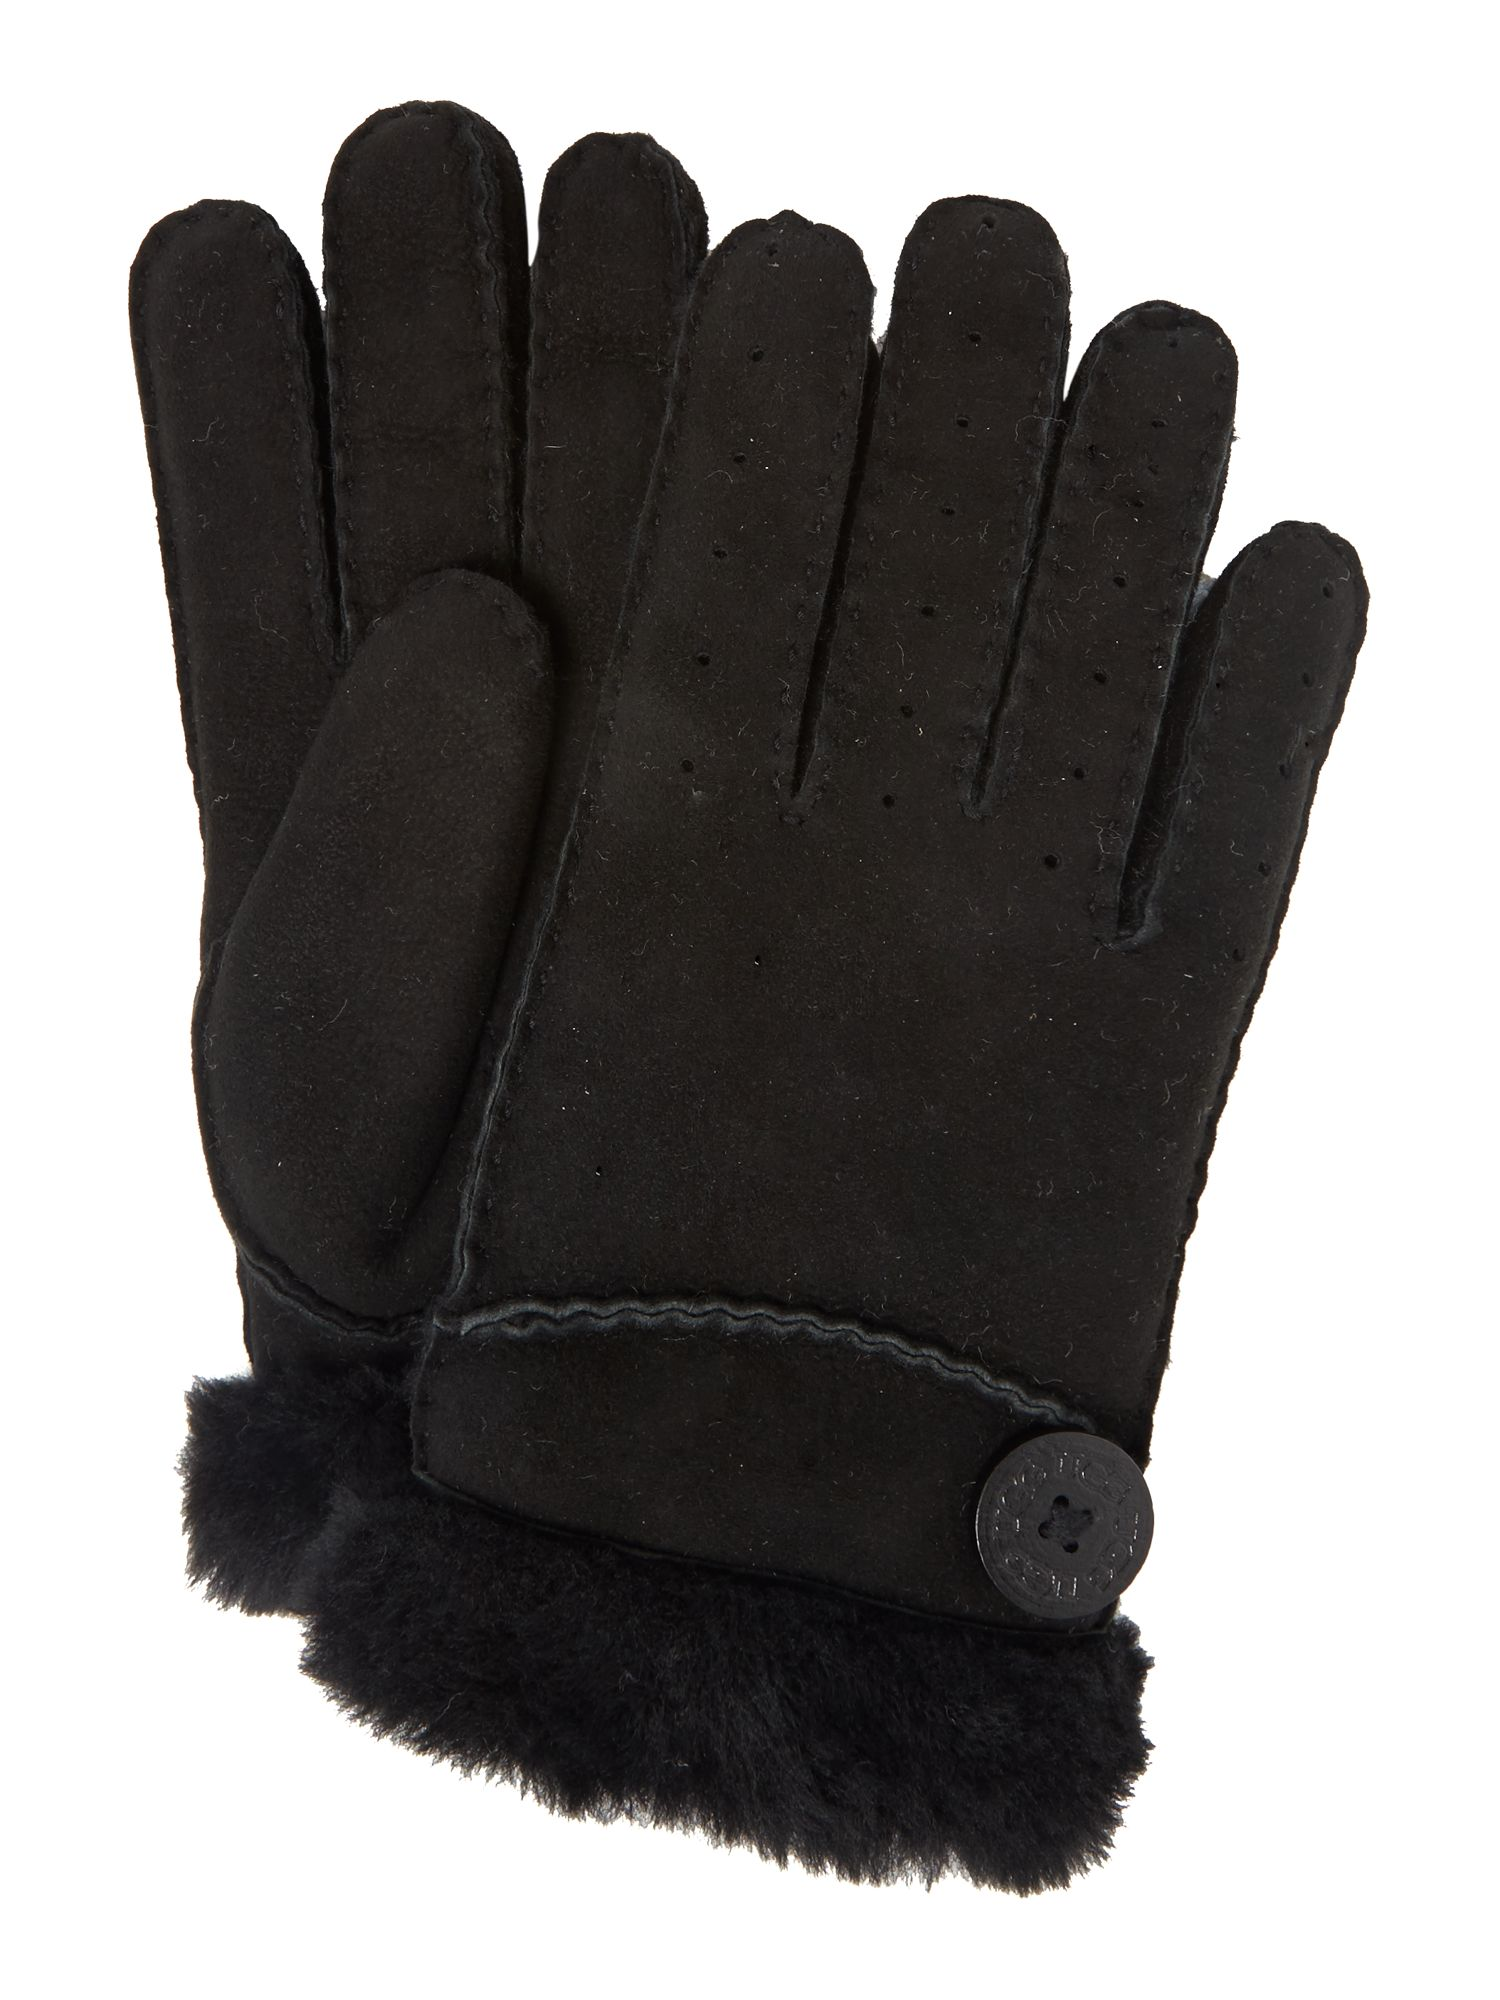 Classic Bailey gloves